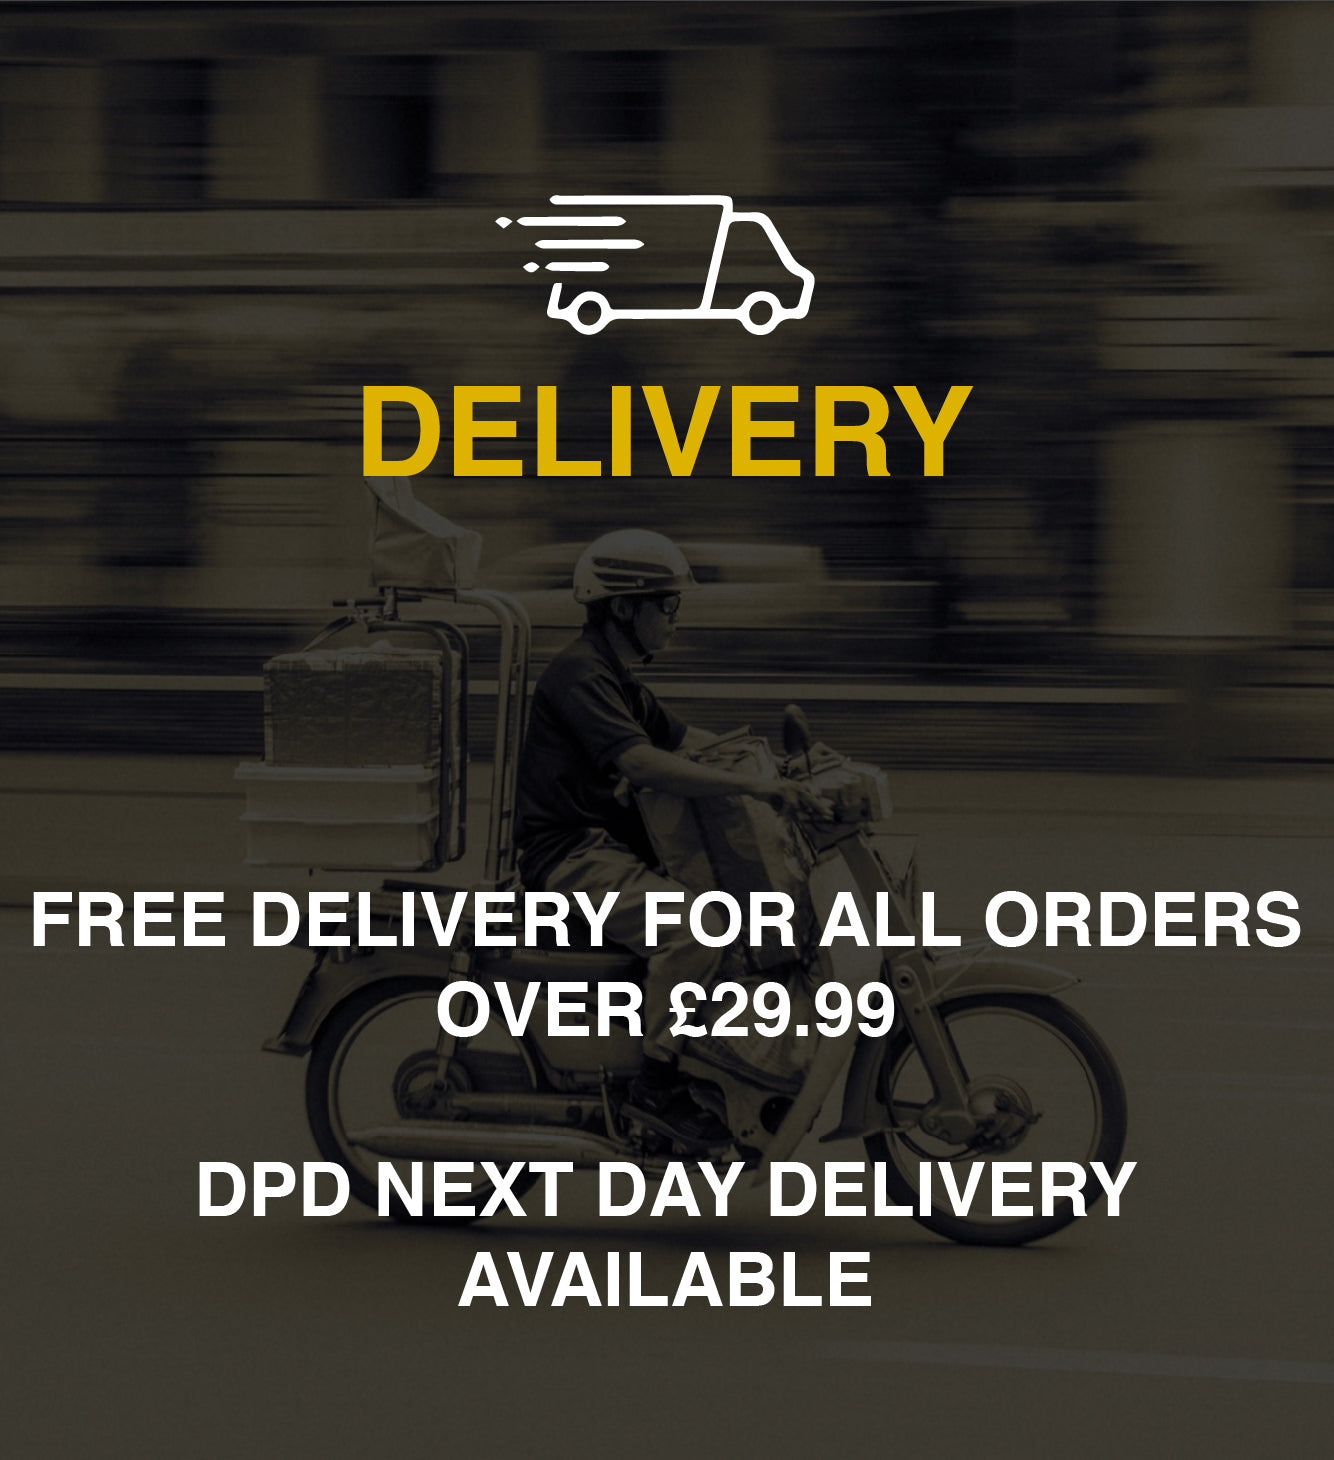 Fast delivery and free over £29.99